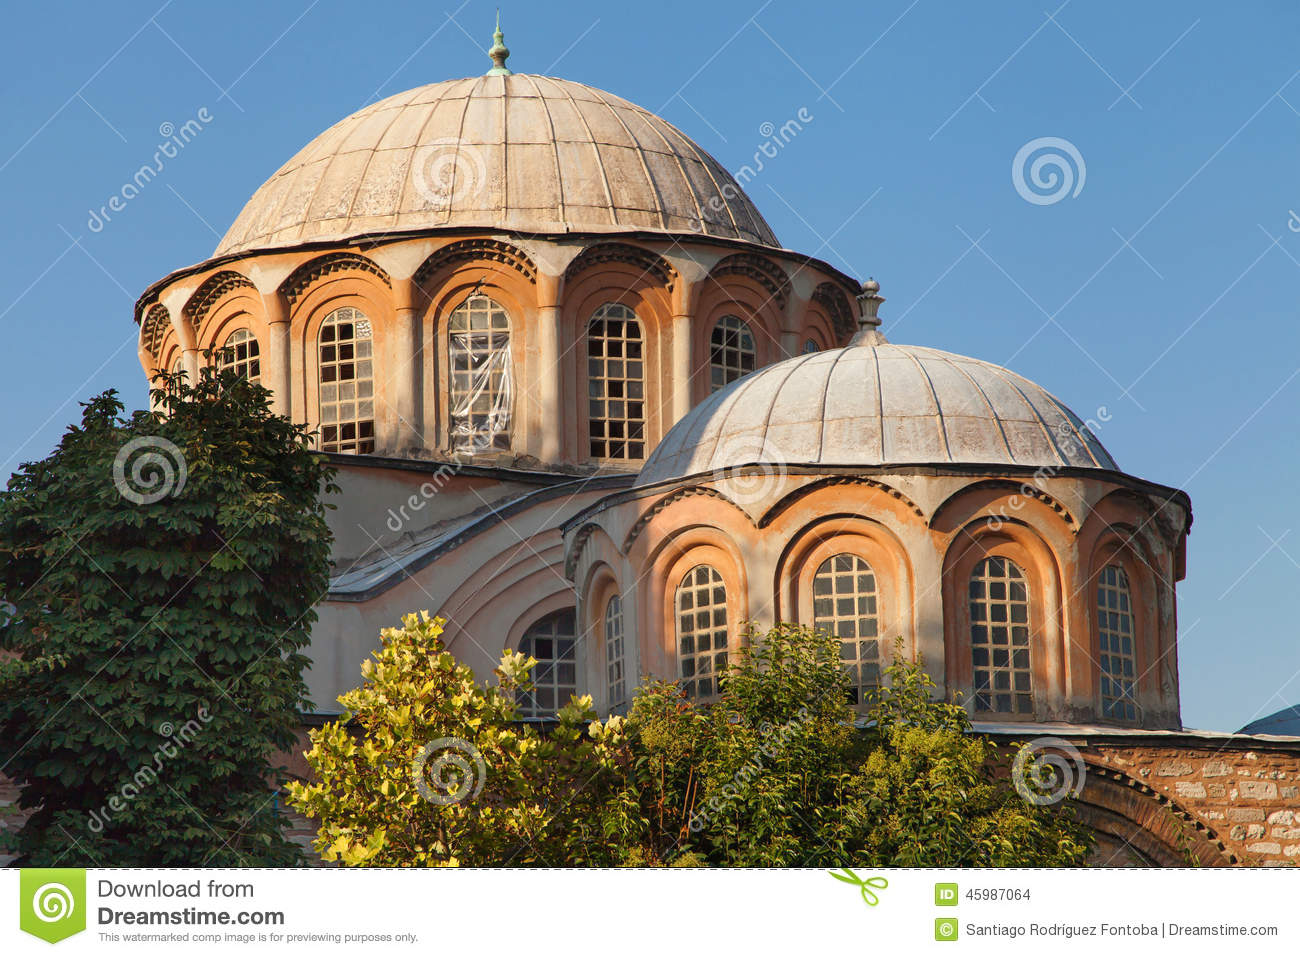 Chora Church Stock Photo - Image: 45987064